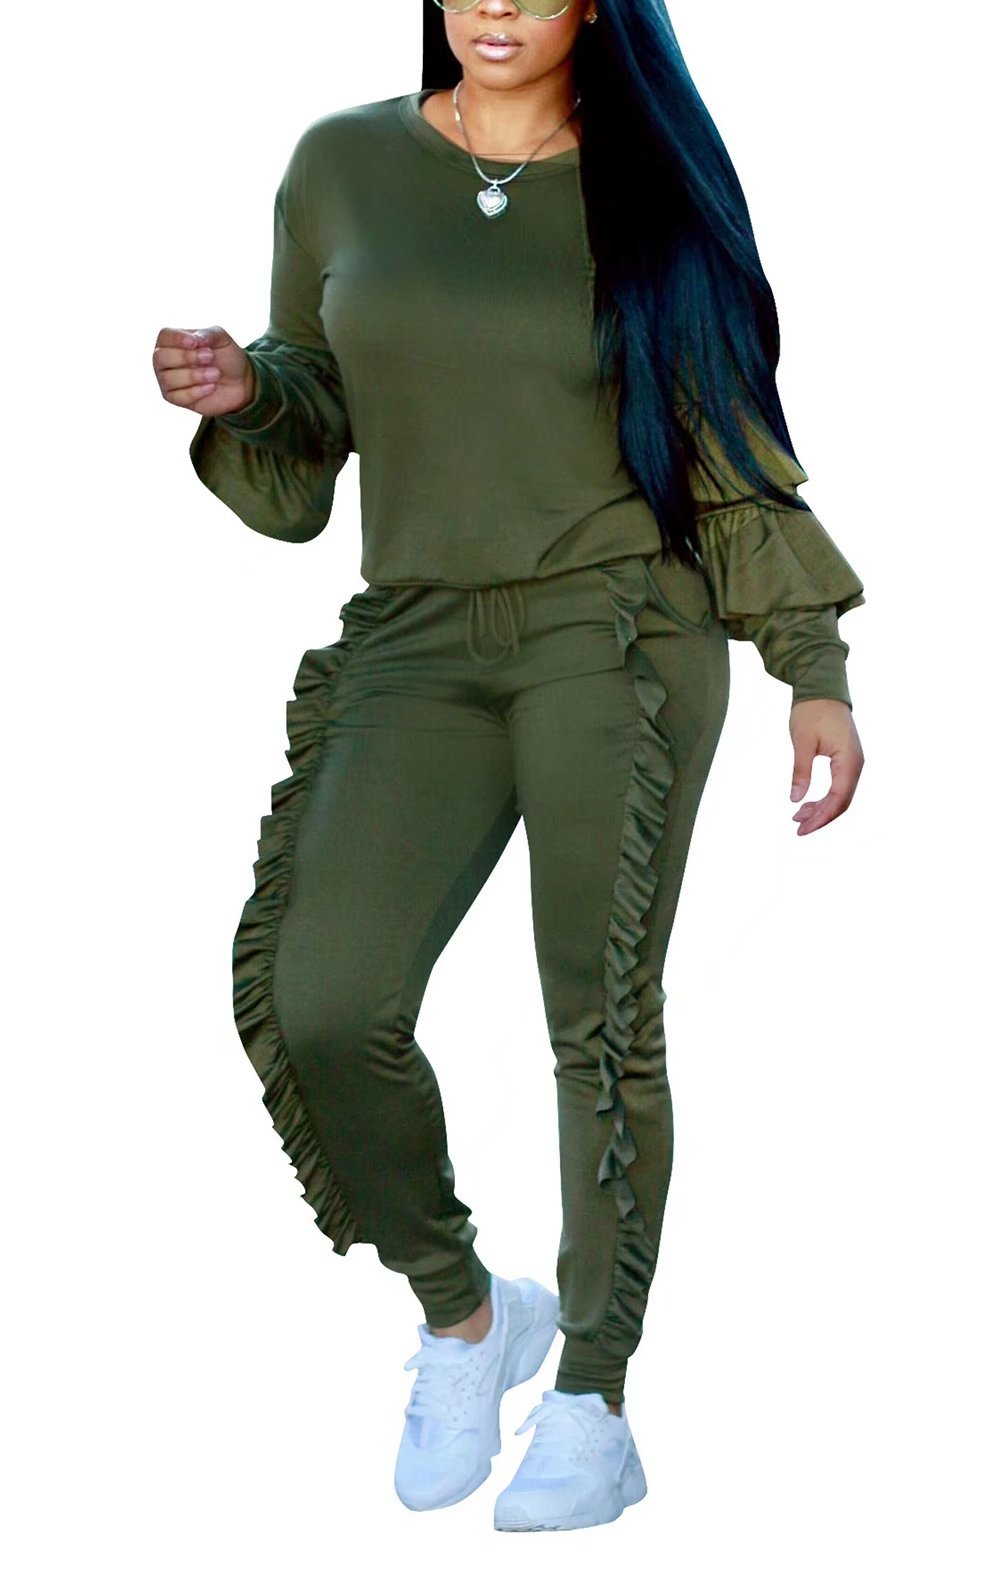 Women's 2 Pieces Sets Ruffles Sleeve Sweatshirts Pants Tracksuit Outfits Green L